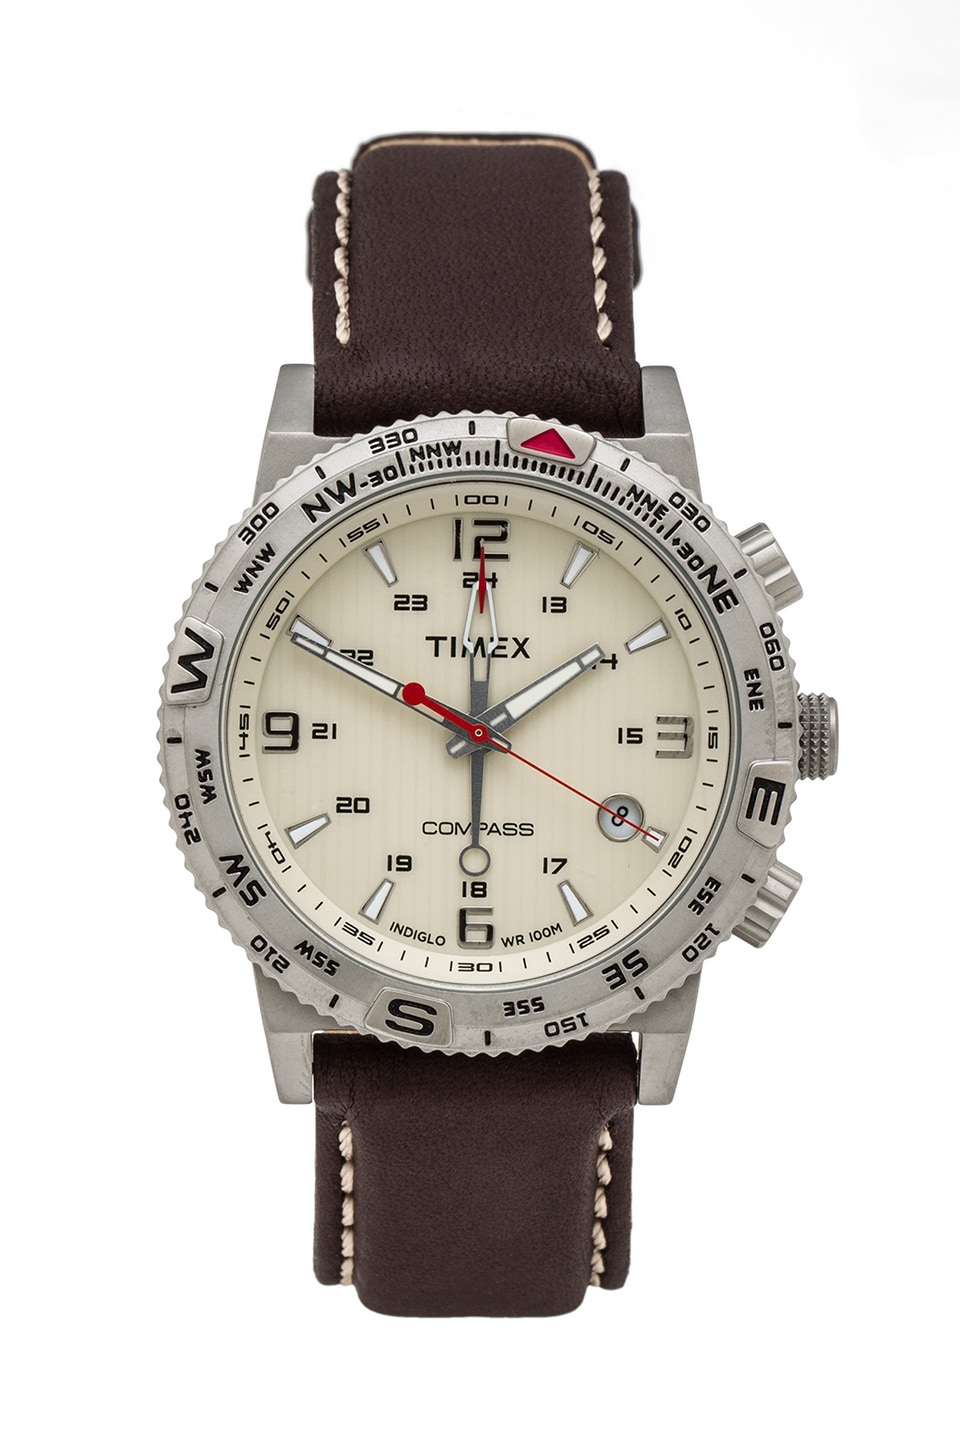 Timex Adventure Series Compass in Crme & Red & Brown